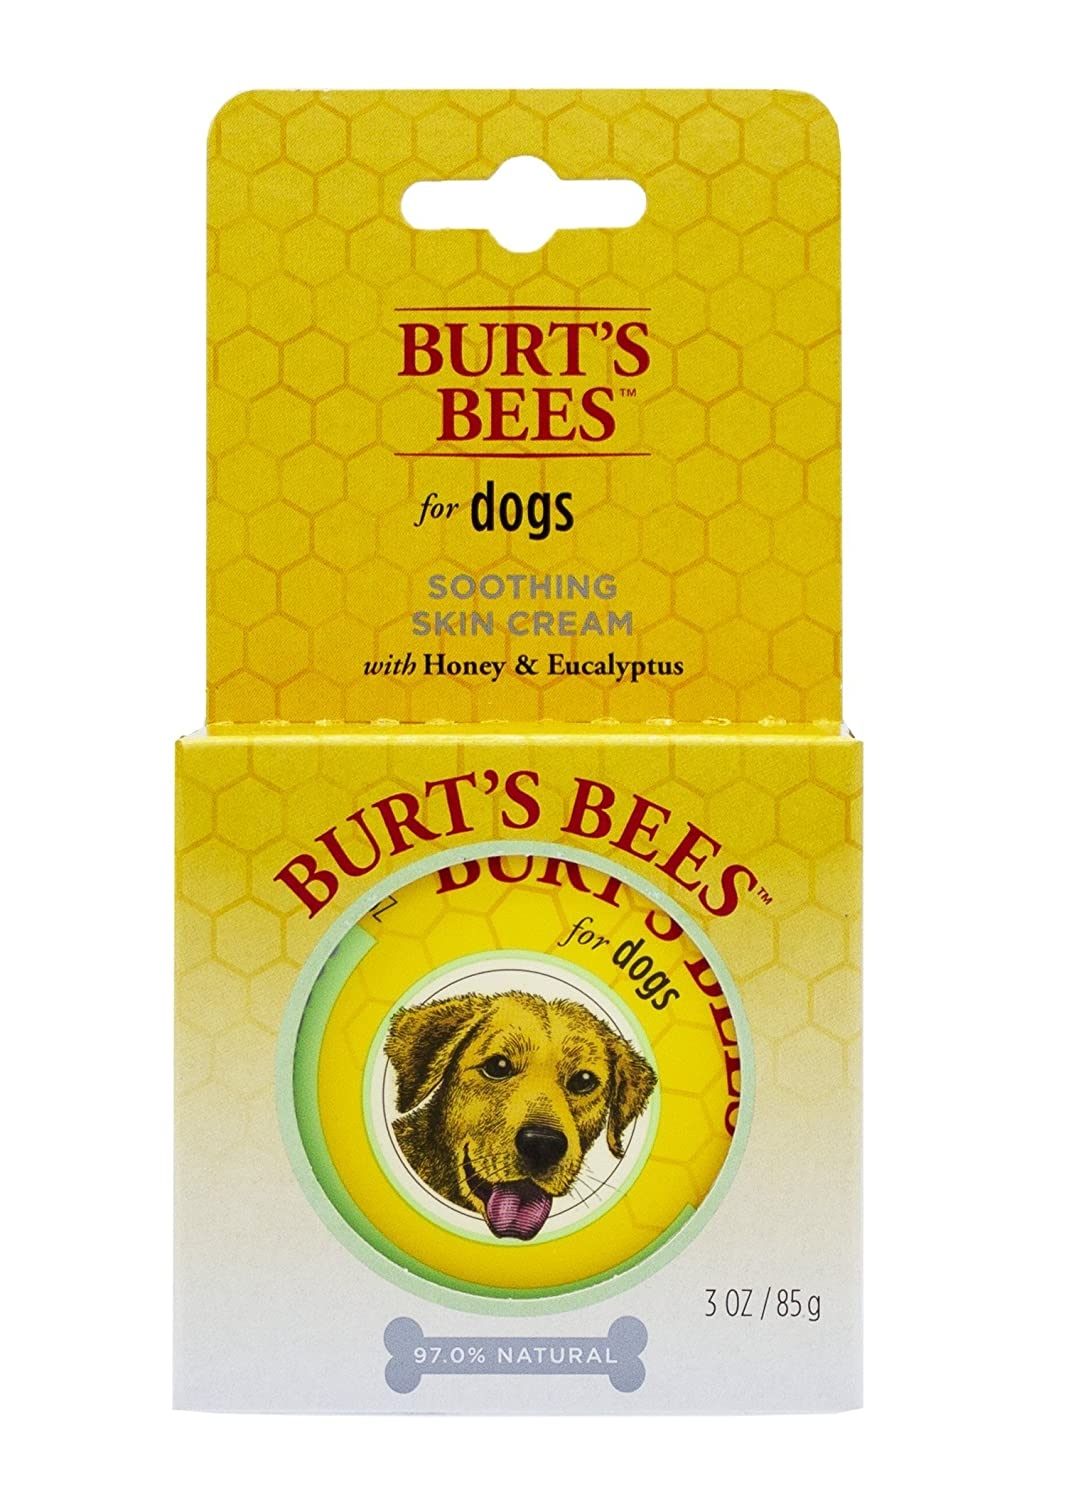 Burts Bees For Dogs All Natural Soothing Skin Cream With Honey Eucalyptus For All Dogs And Puppies 3oz Fetch For Pets Llc Ffp4928 Blog Transfermyauto Com